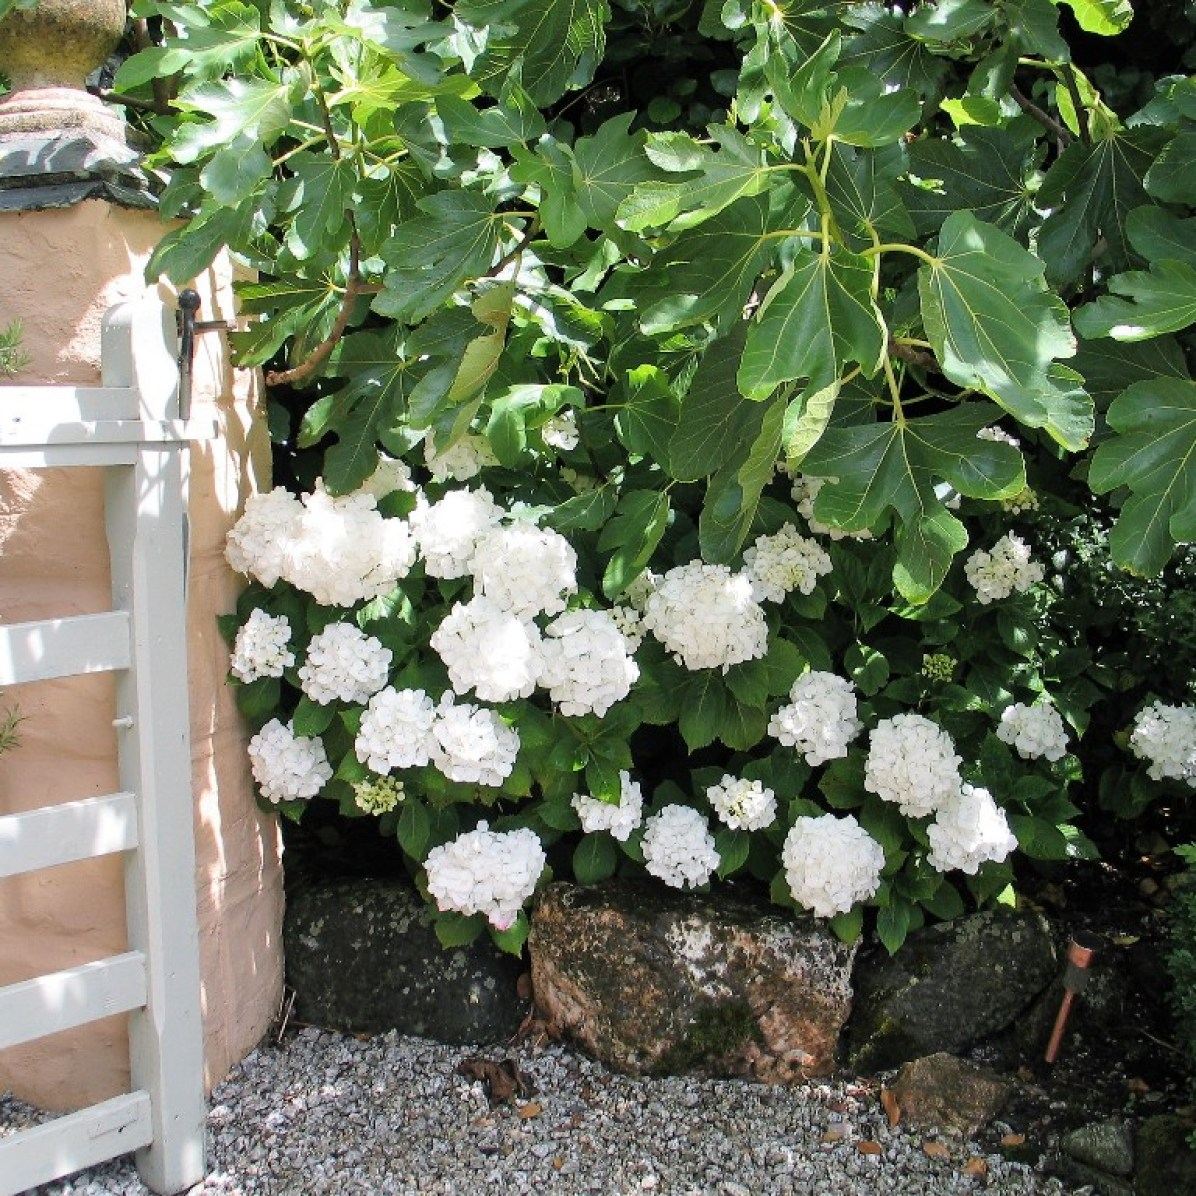 Lush white hydrangeas underplanting fig trees